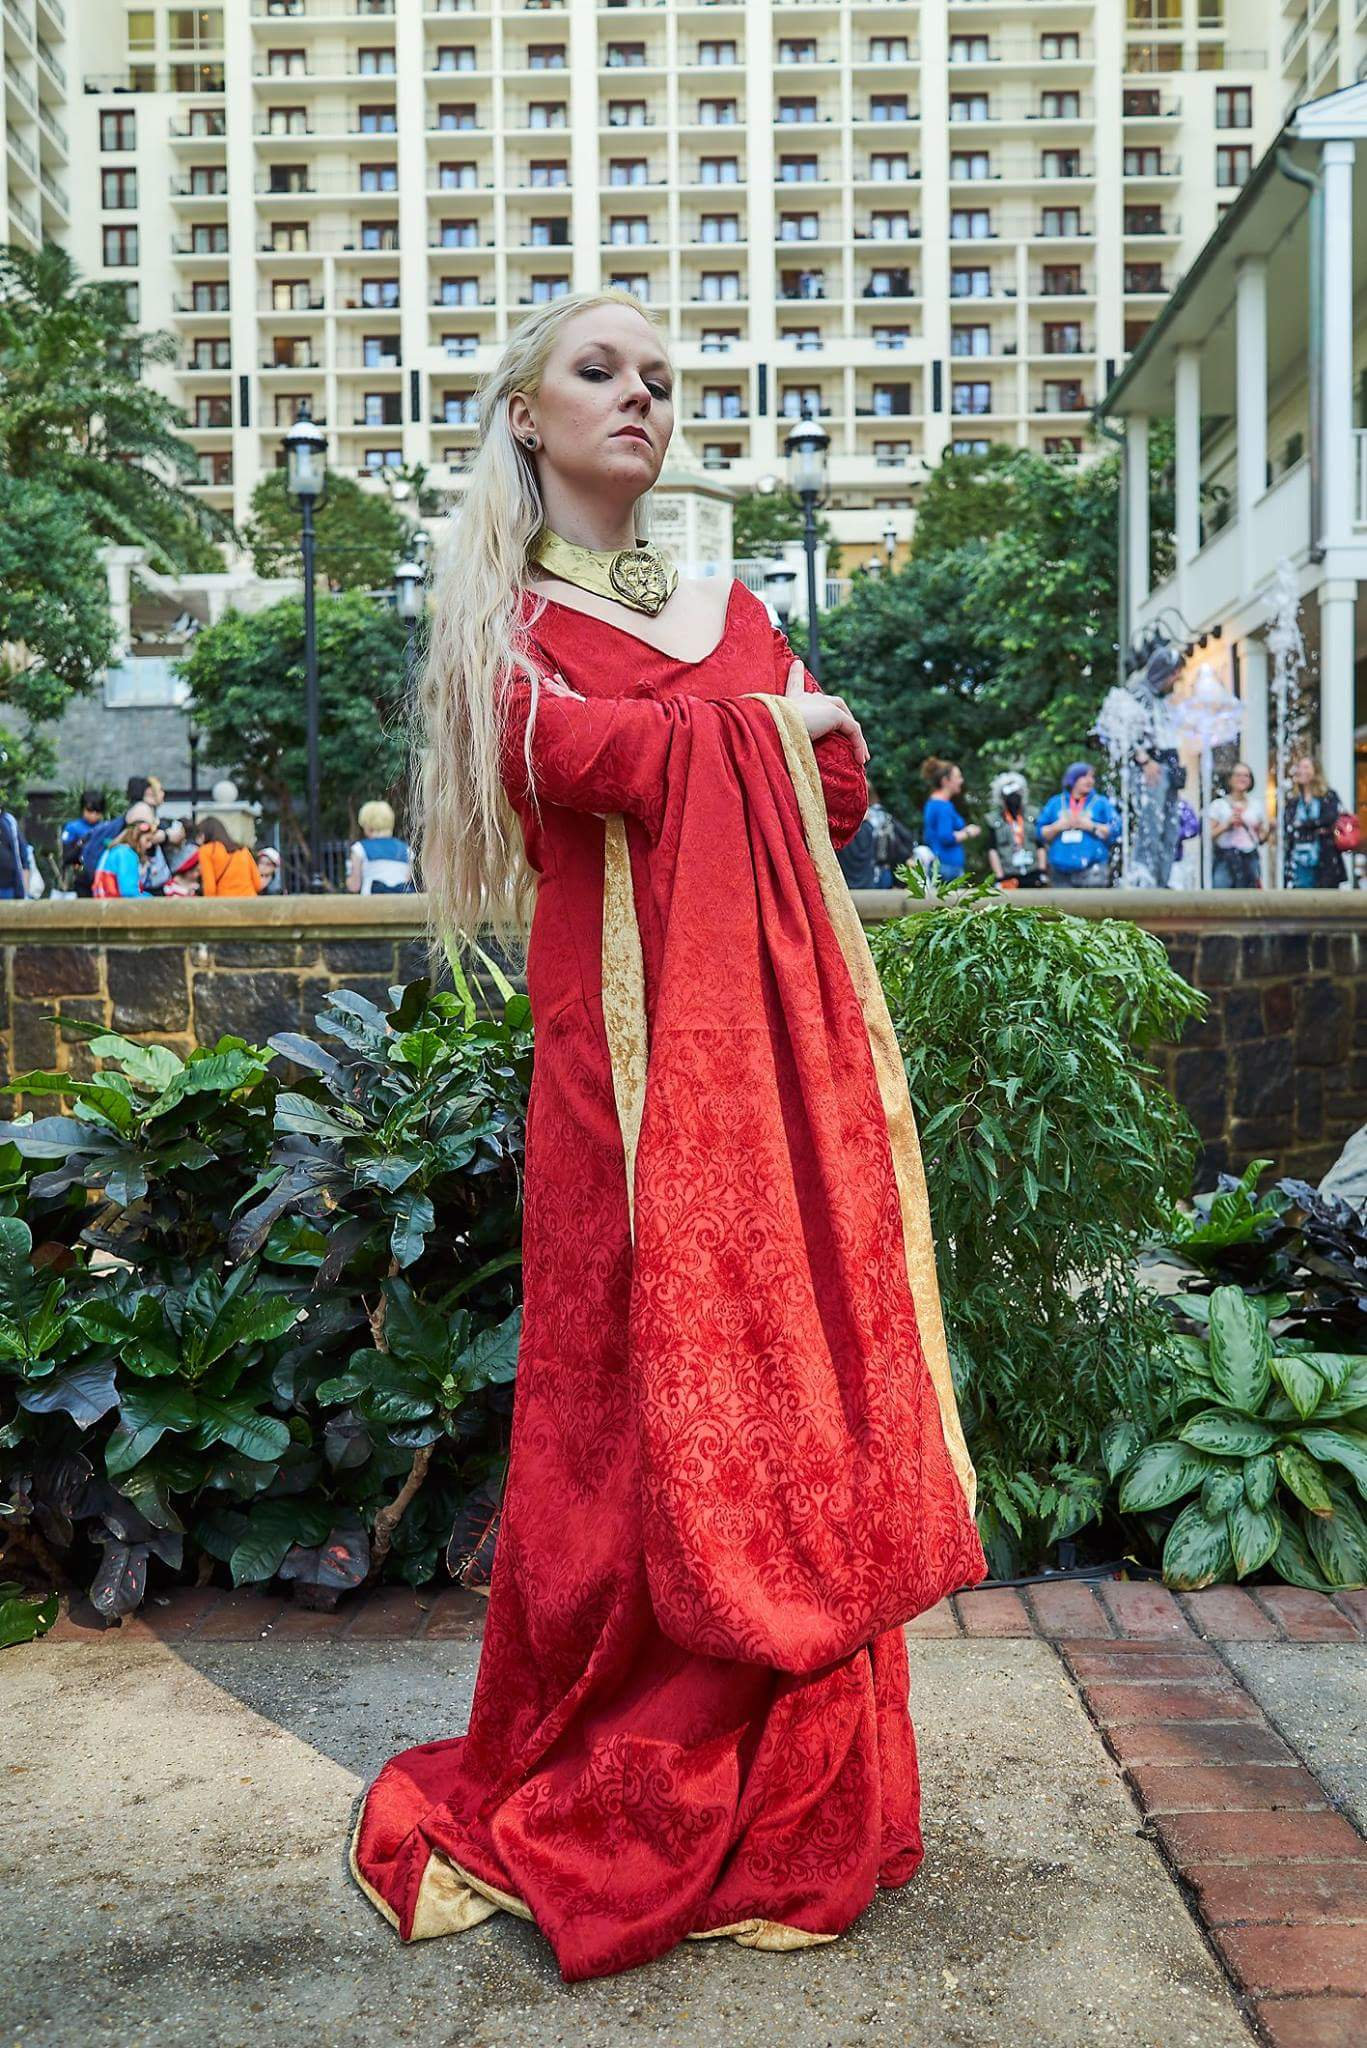 Cersei Lannister- Game Of Thrones  I can finally sew well enough! YAY!  100% done by me  I've never been so proud of a sewing project before! I used McCalls M6940 pattern for this. The base of the necklace is thin craft foam and worbla. I sculped the lion out of super sculpty and baked it(after the dragon casting fiasco I wasn't risking another failed cast). I glued it onto the worbla with contact cement. Plastidipped (white) and finished with gold spray paint.  Then you add a bitchy attitude and a lot of eye rolling.  She's so much fun to play.  Photo by:  www.facebook.com/owlbearmedia